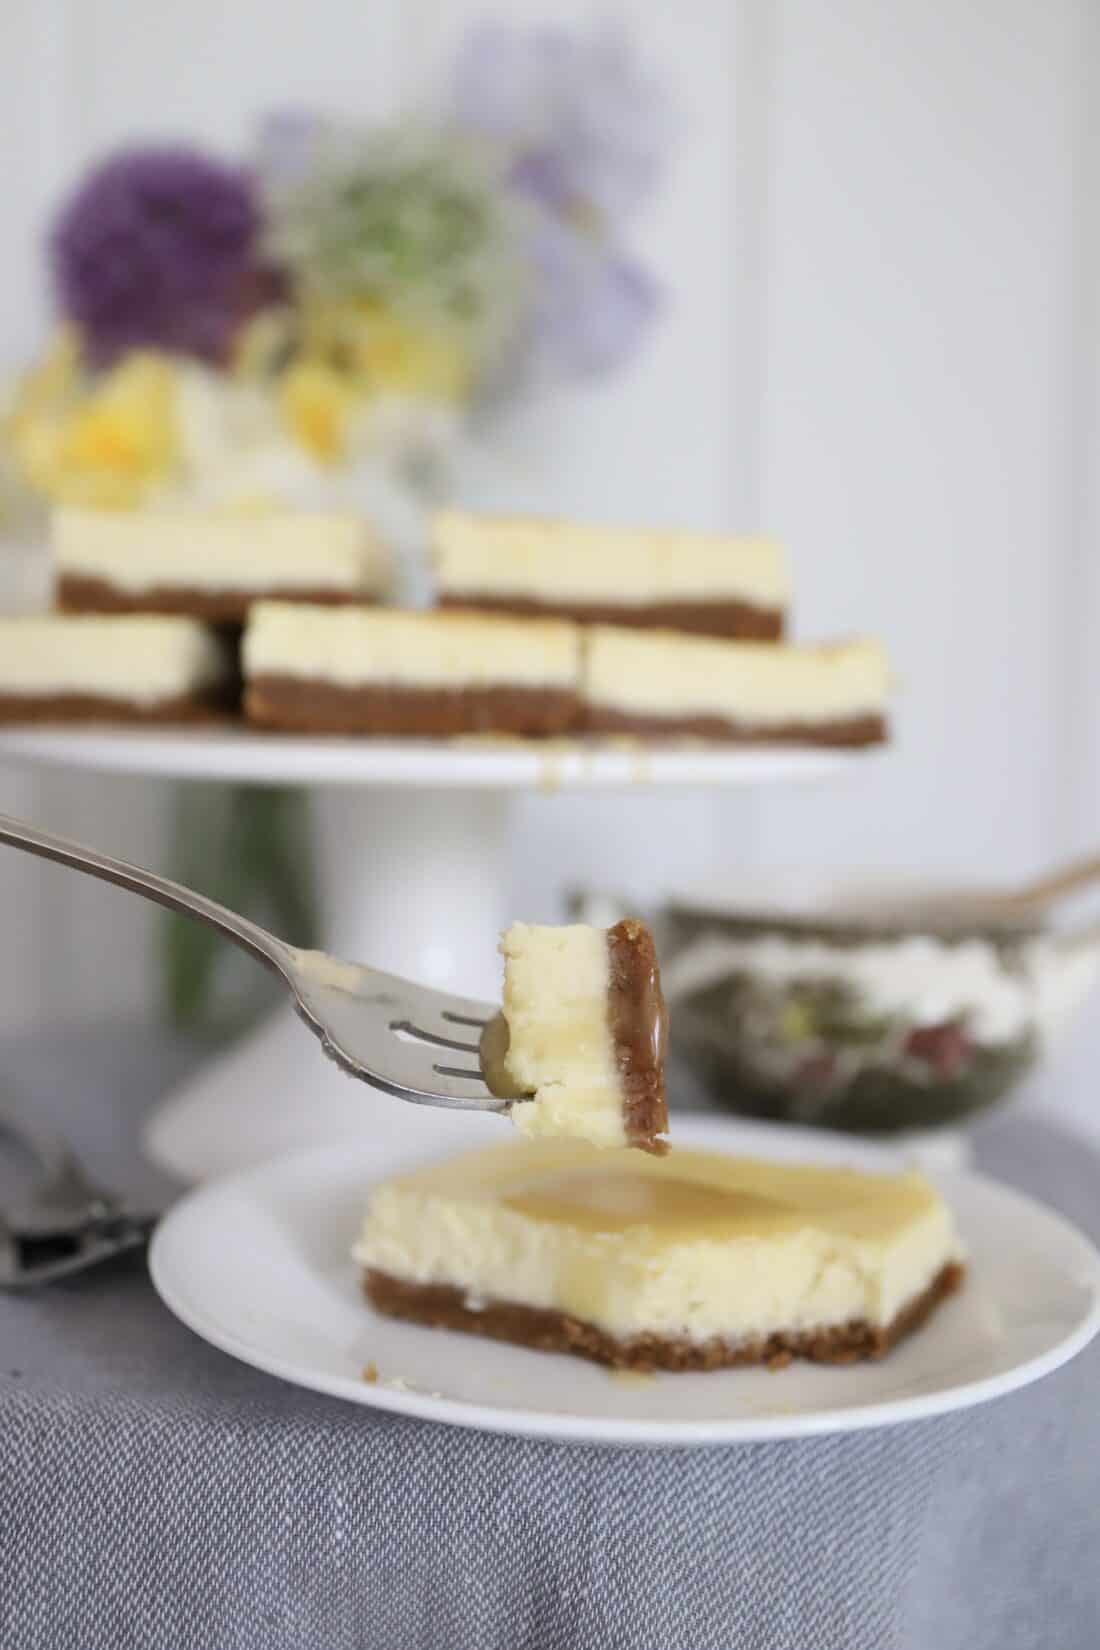 a bite of cheesecake without a springform pan on a fork about to be eaten